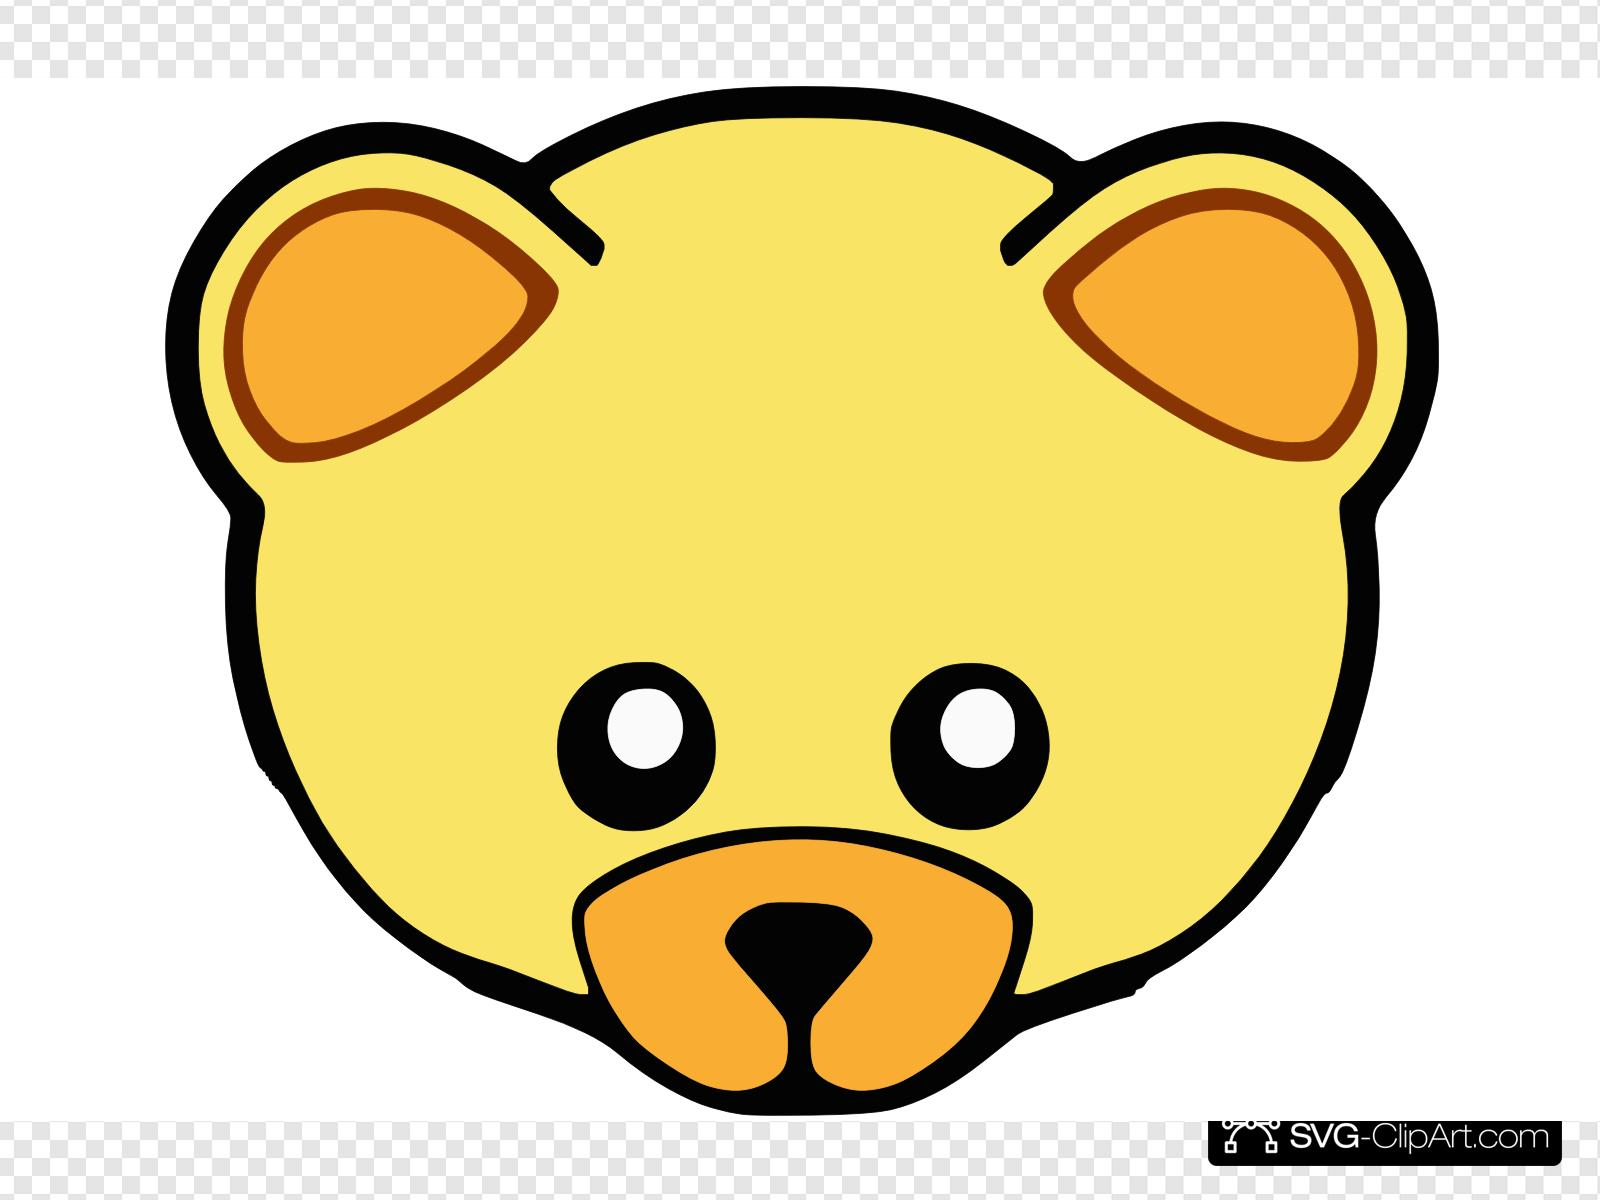 Yellow Cute Teddy Bear Face Clip art, Icon and SVG.